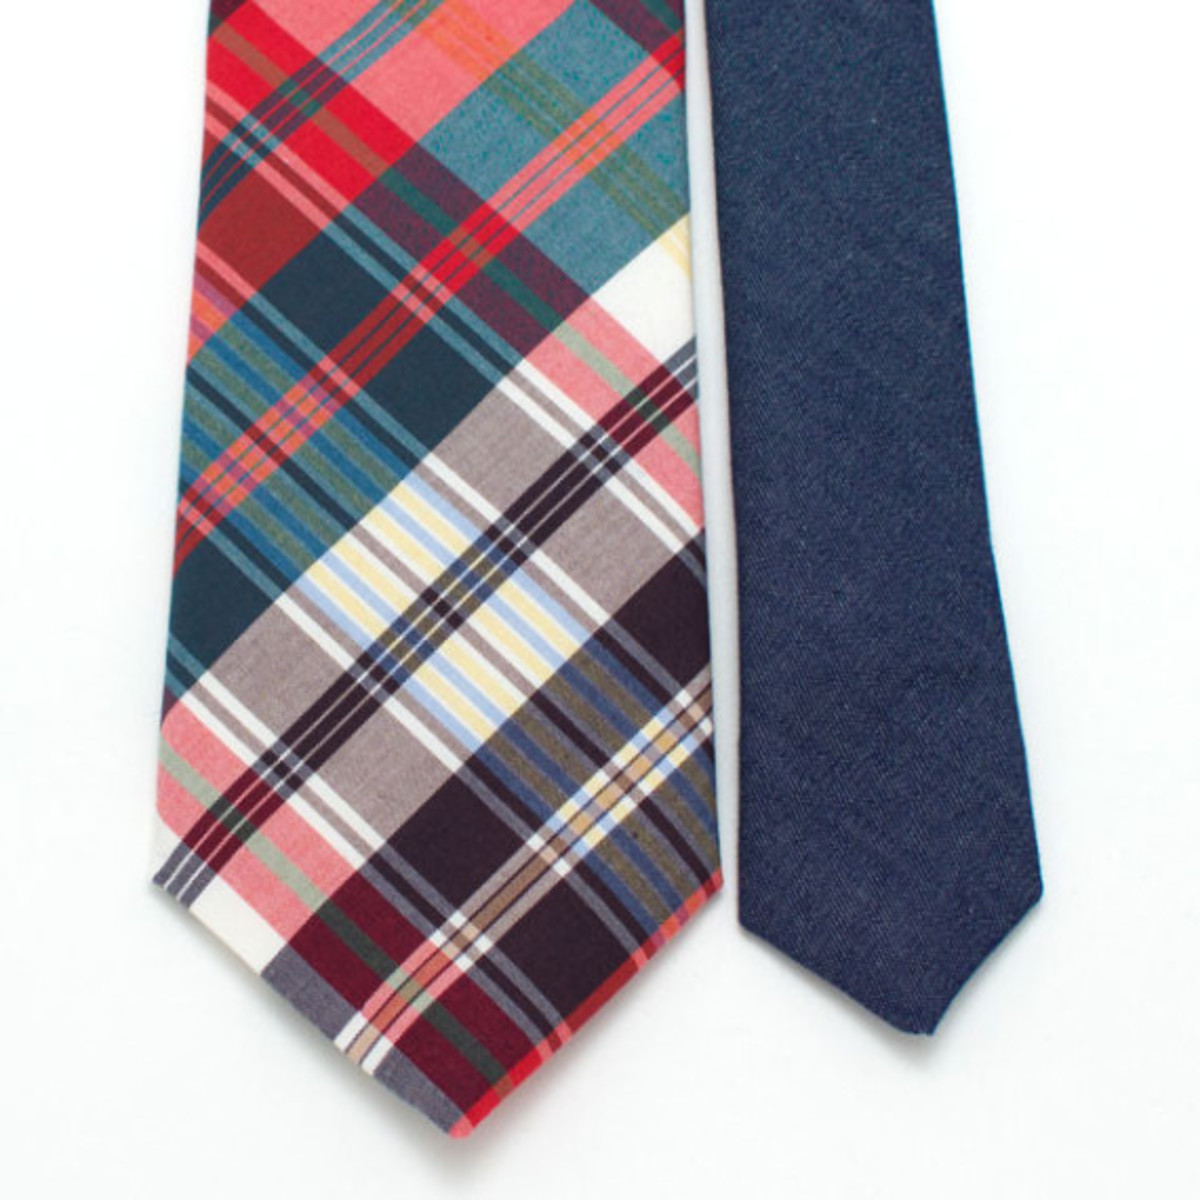 general-knot-and-co-portland-family-neckwear-collection-08